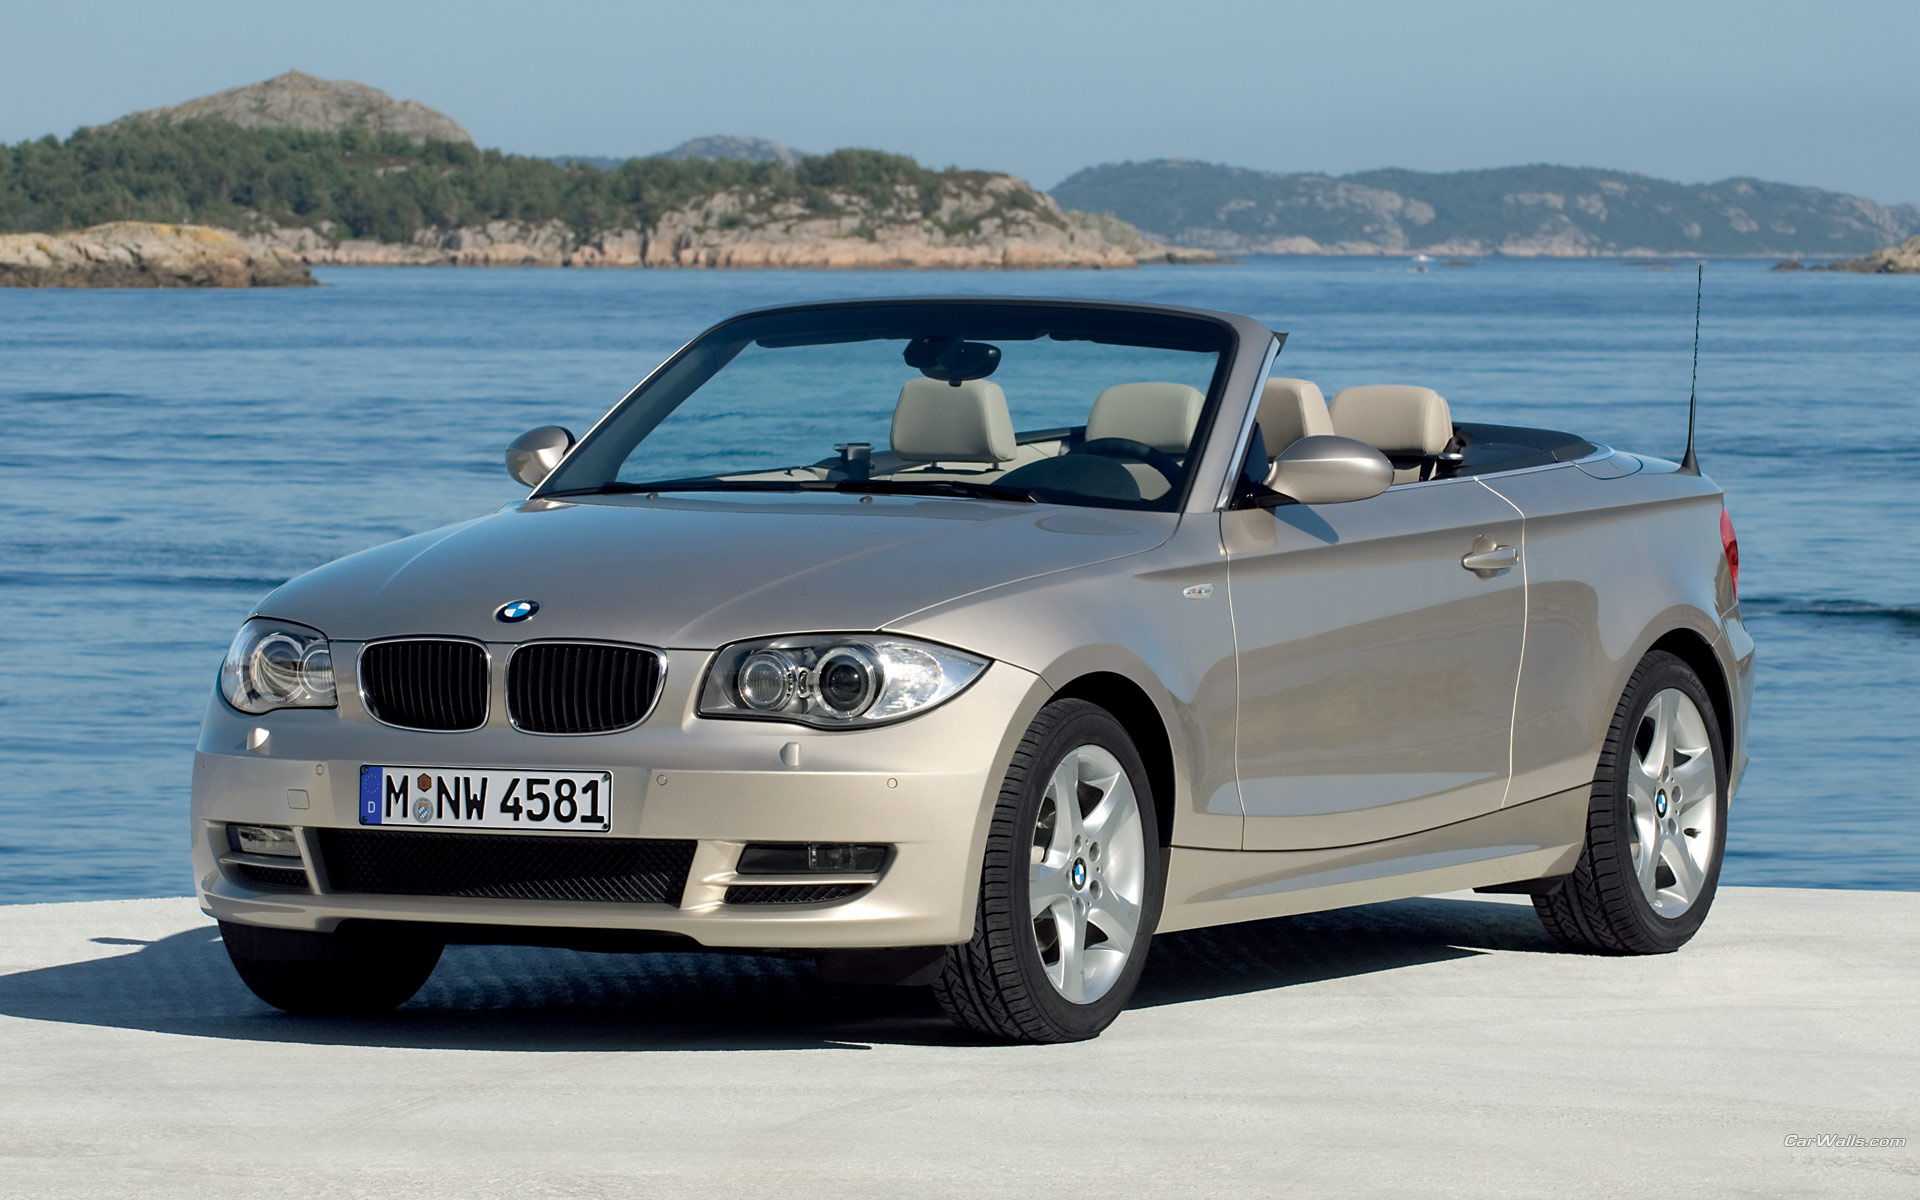 bmw 1er cabrio photos 4 on better parts ltd. Black Bedroom Furniture Sets. Home Design Ideas